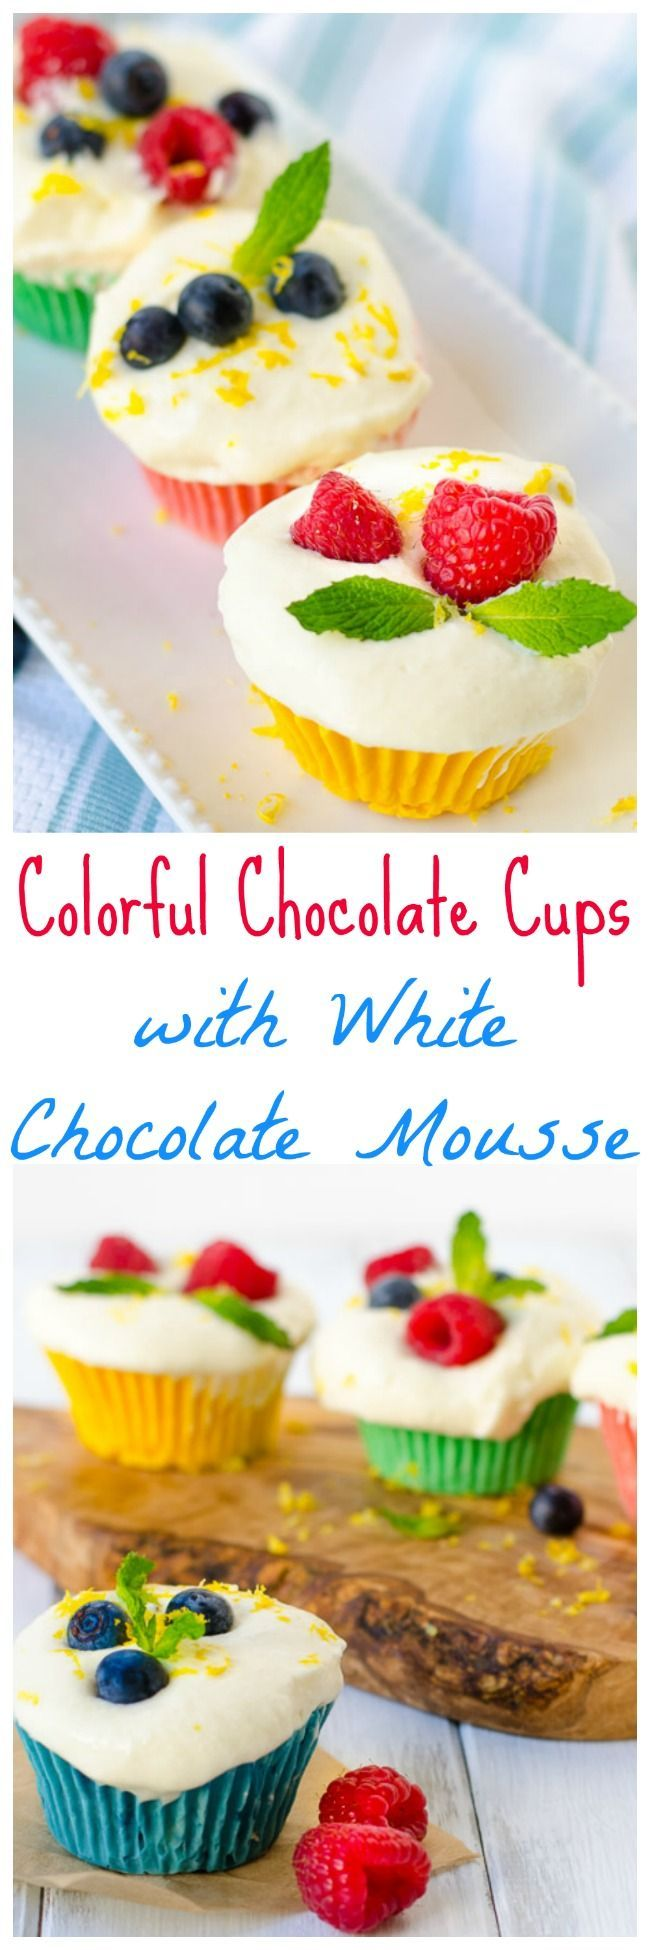 Rich, creamy white chocolate cups get a punch of any color you like. Fill them with fluffy mousse and they're perfect for a party (or any lovely spring day). SO easy but look impressive!